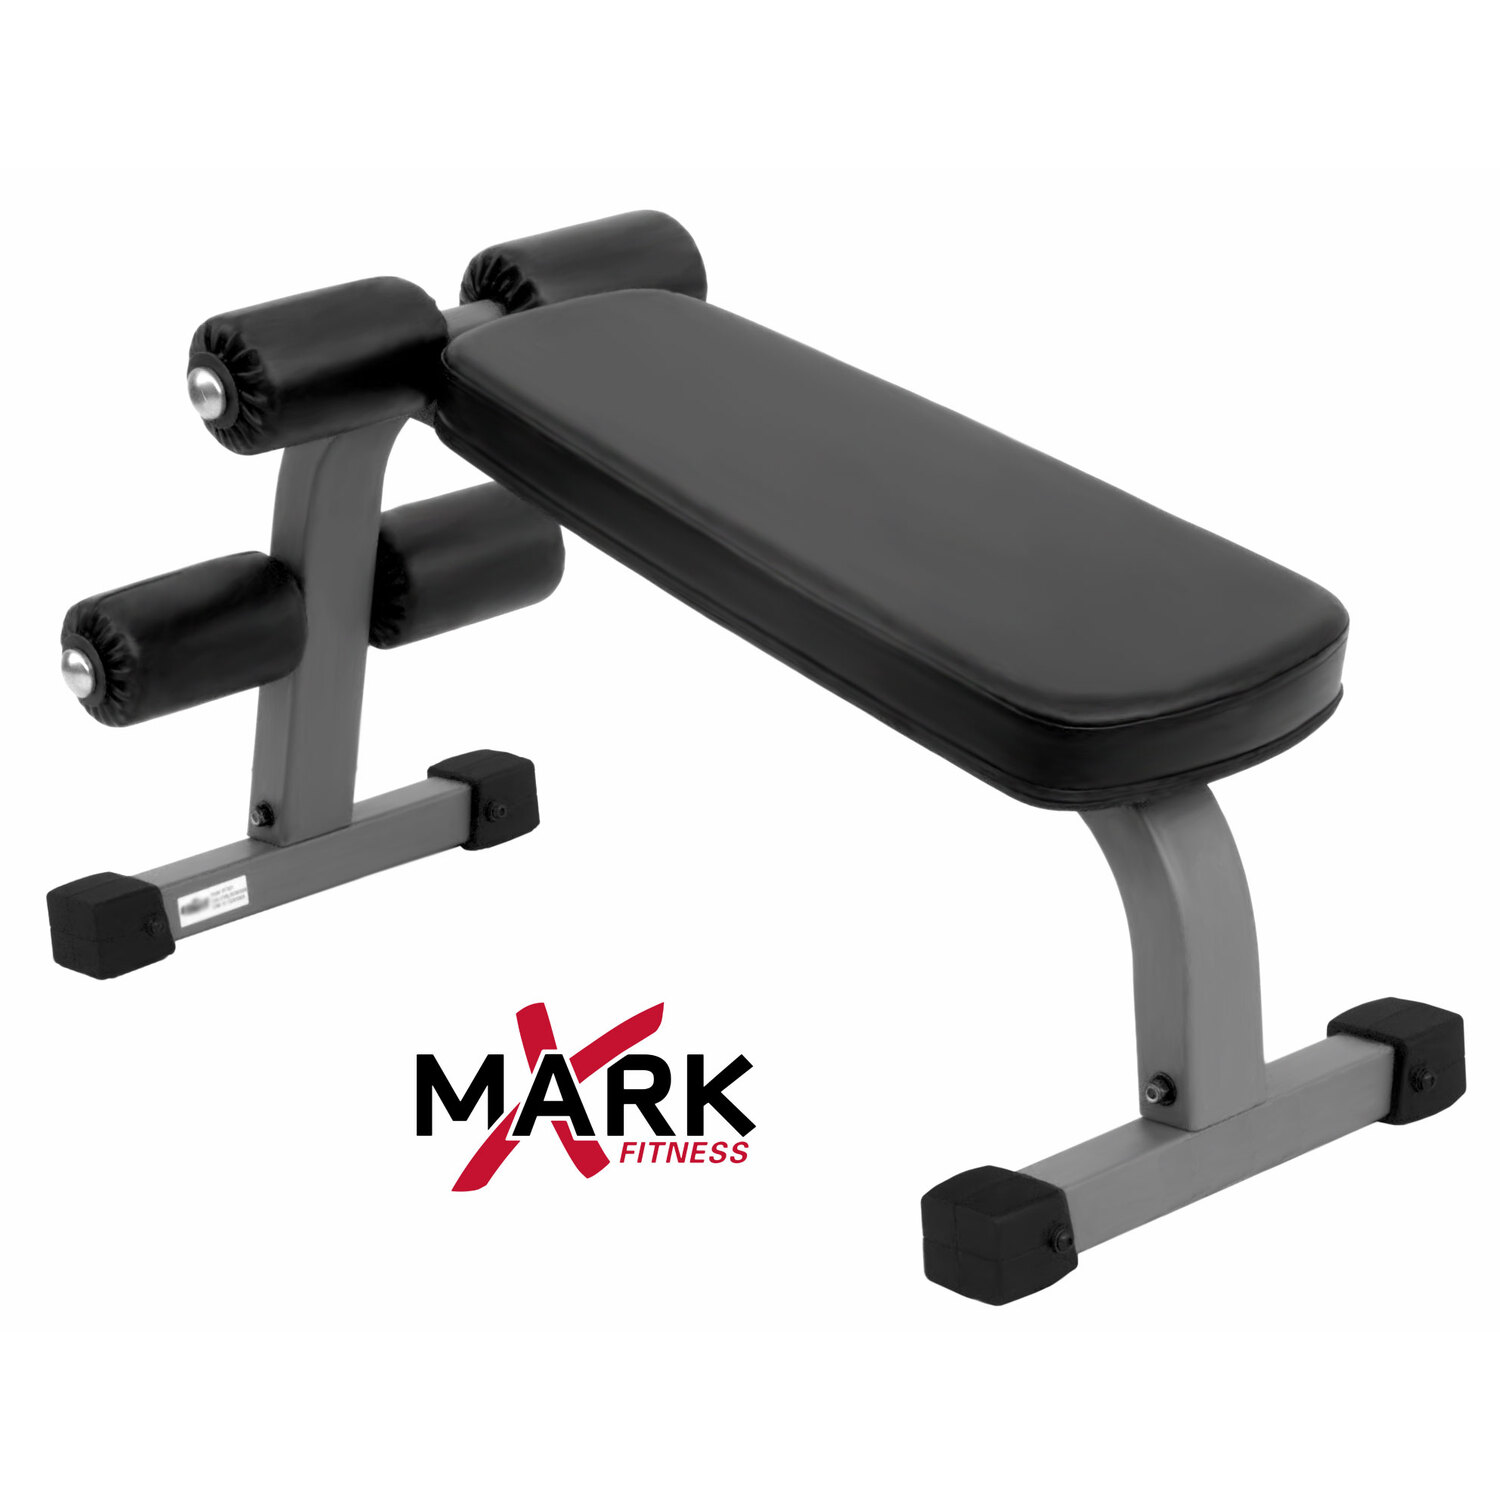 Xmark fitness xmark commercial mini ab decline bench by oj commerce xm 7601 Abs bench